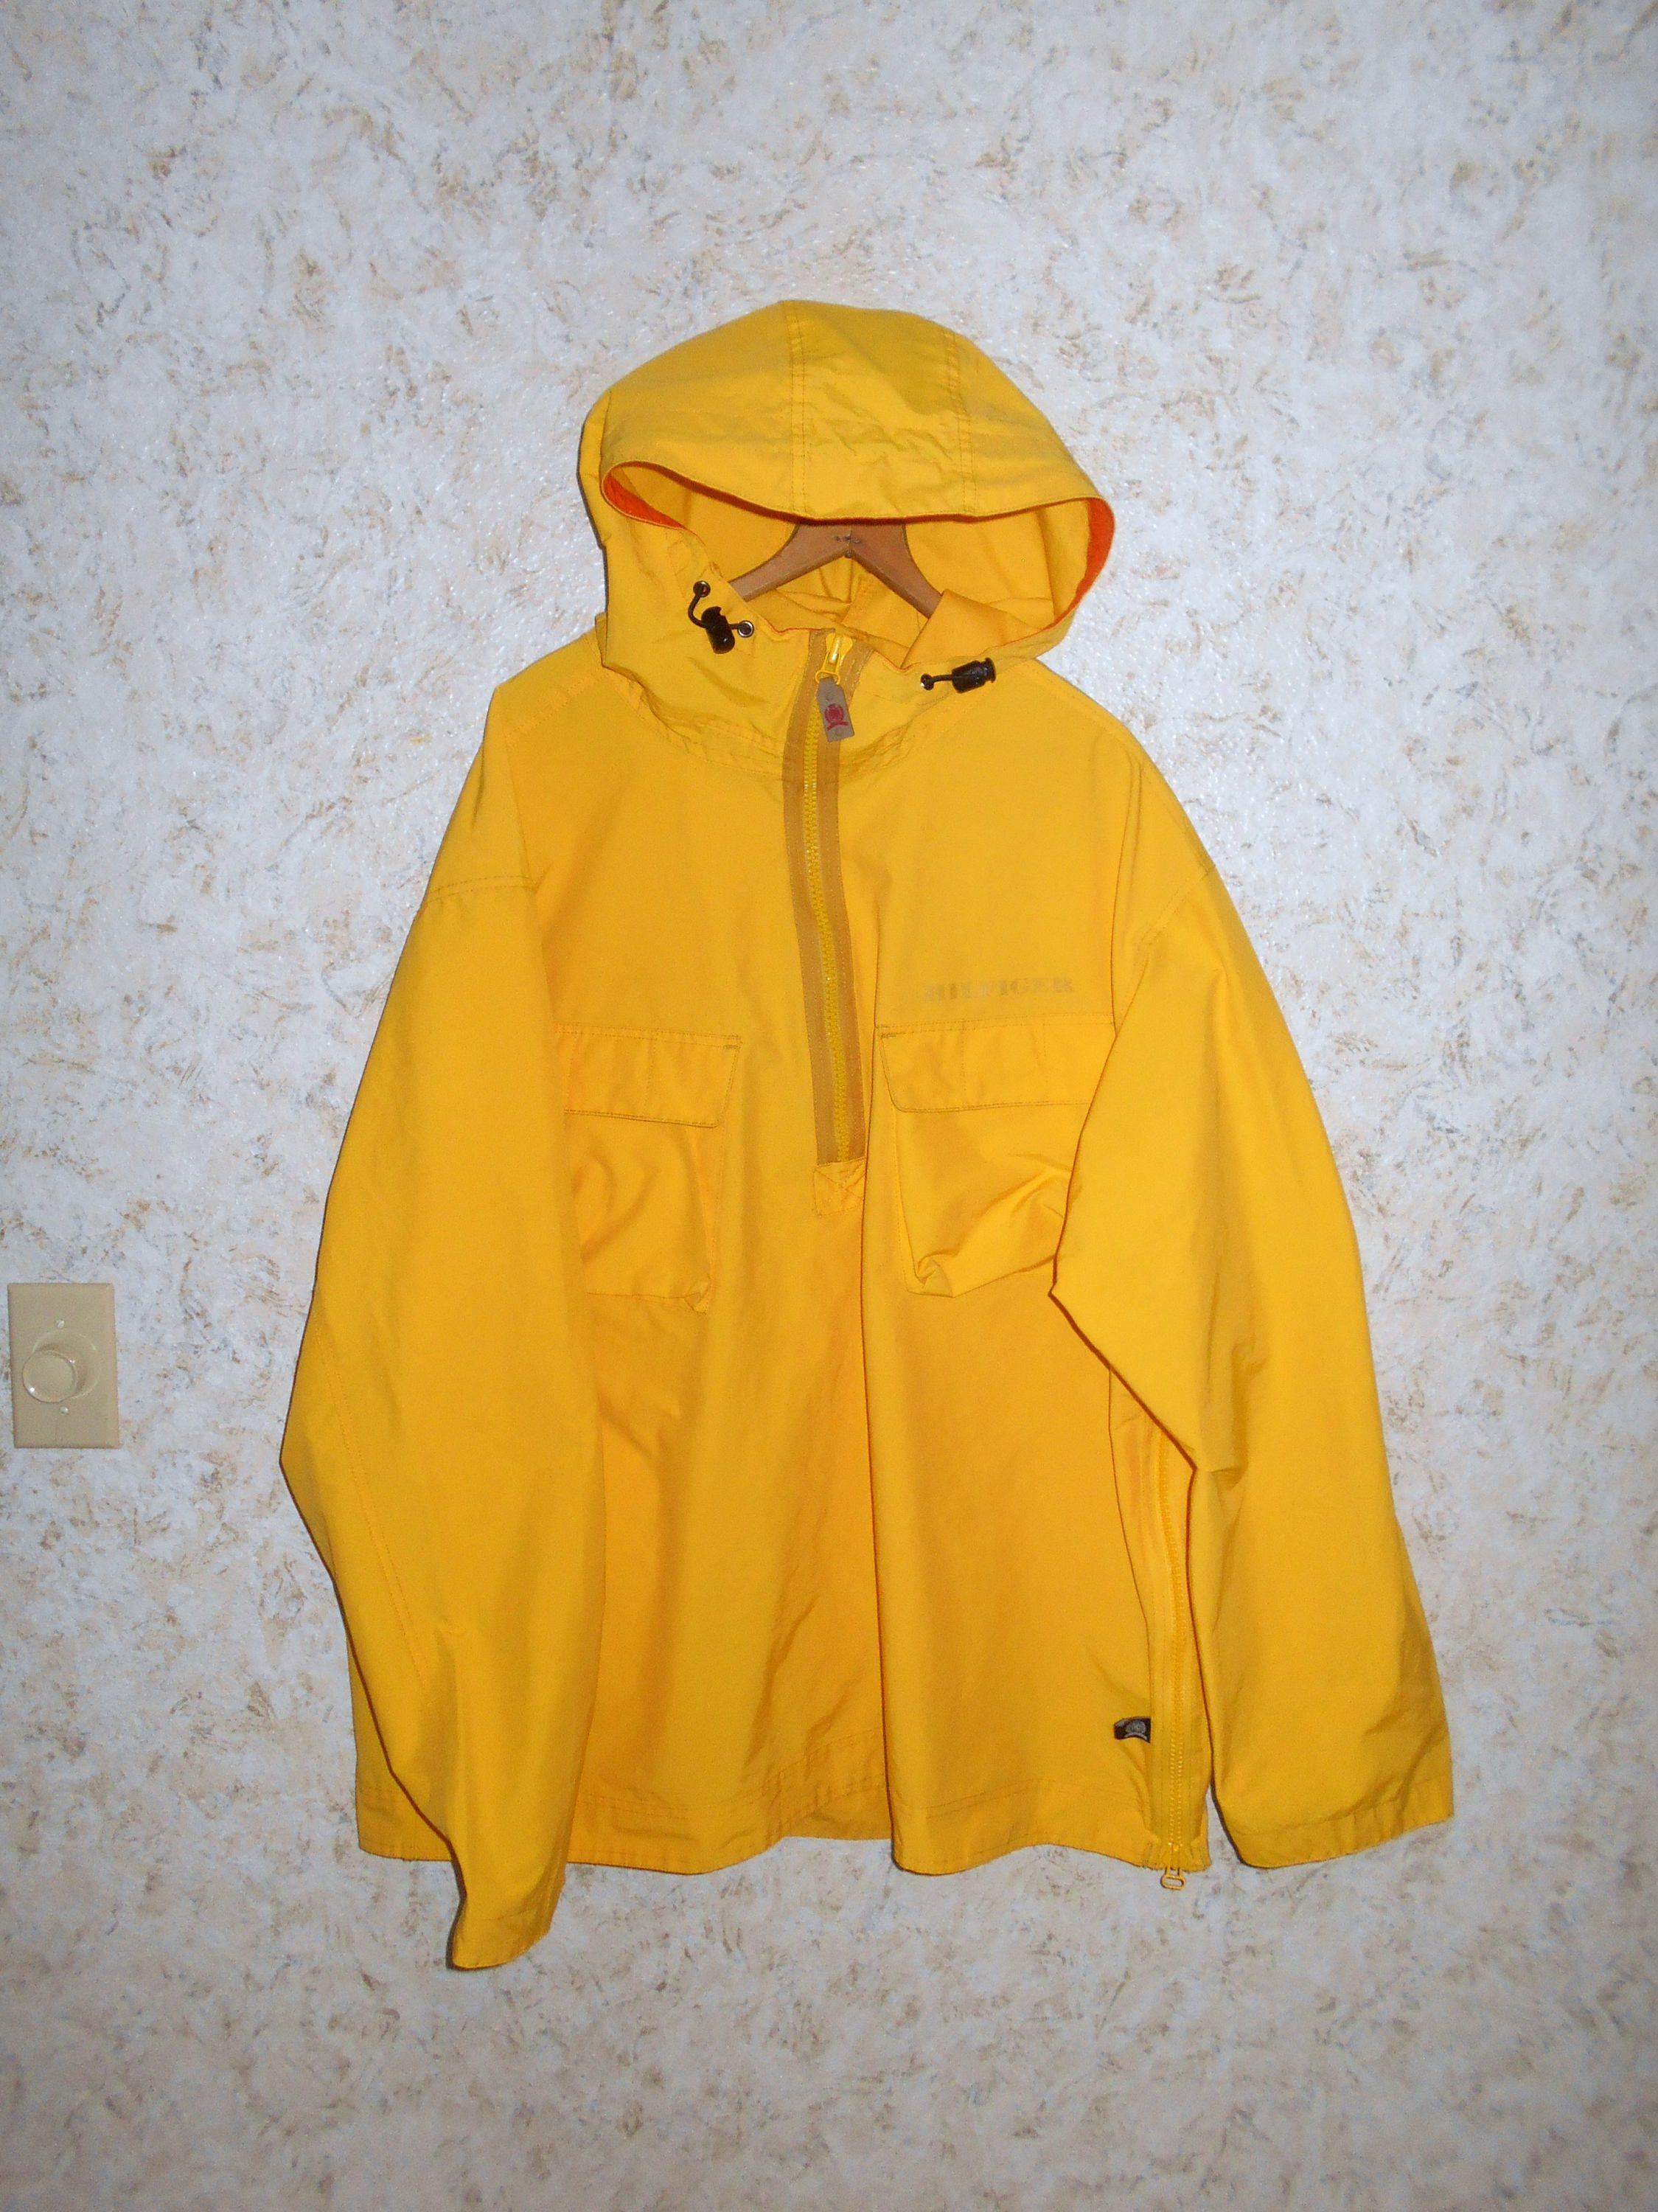 Vintage Tommy Hilfiger Yellow Sailing Yachting Pullover Etsy Pullover Windbreaker Windbreaker Jacket Tommy Hilfiger [ 3000 x 2249 Pixel ]